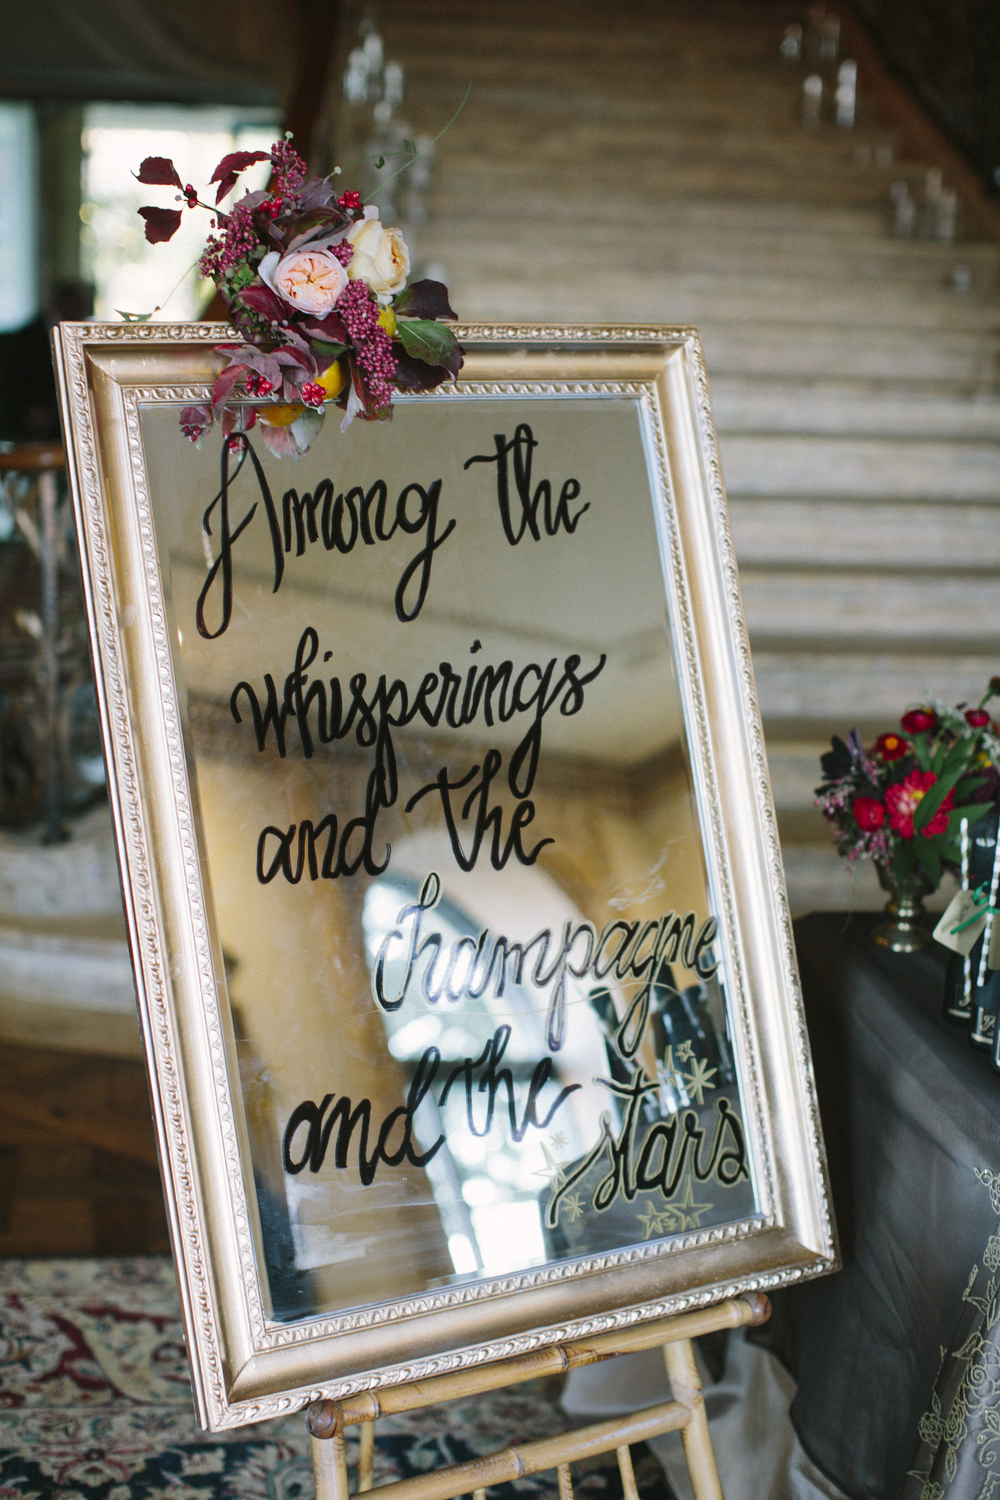 "Our  mirrored sign  read, ""Among the whisperings and the champagne and the stars,"" to inspire guests to dance the night away in romance just like in The Great Gatsby."